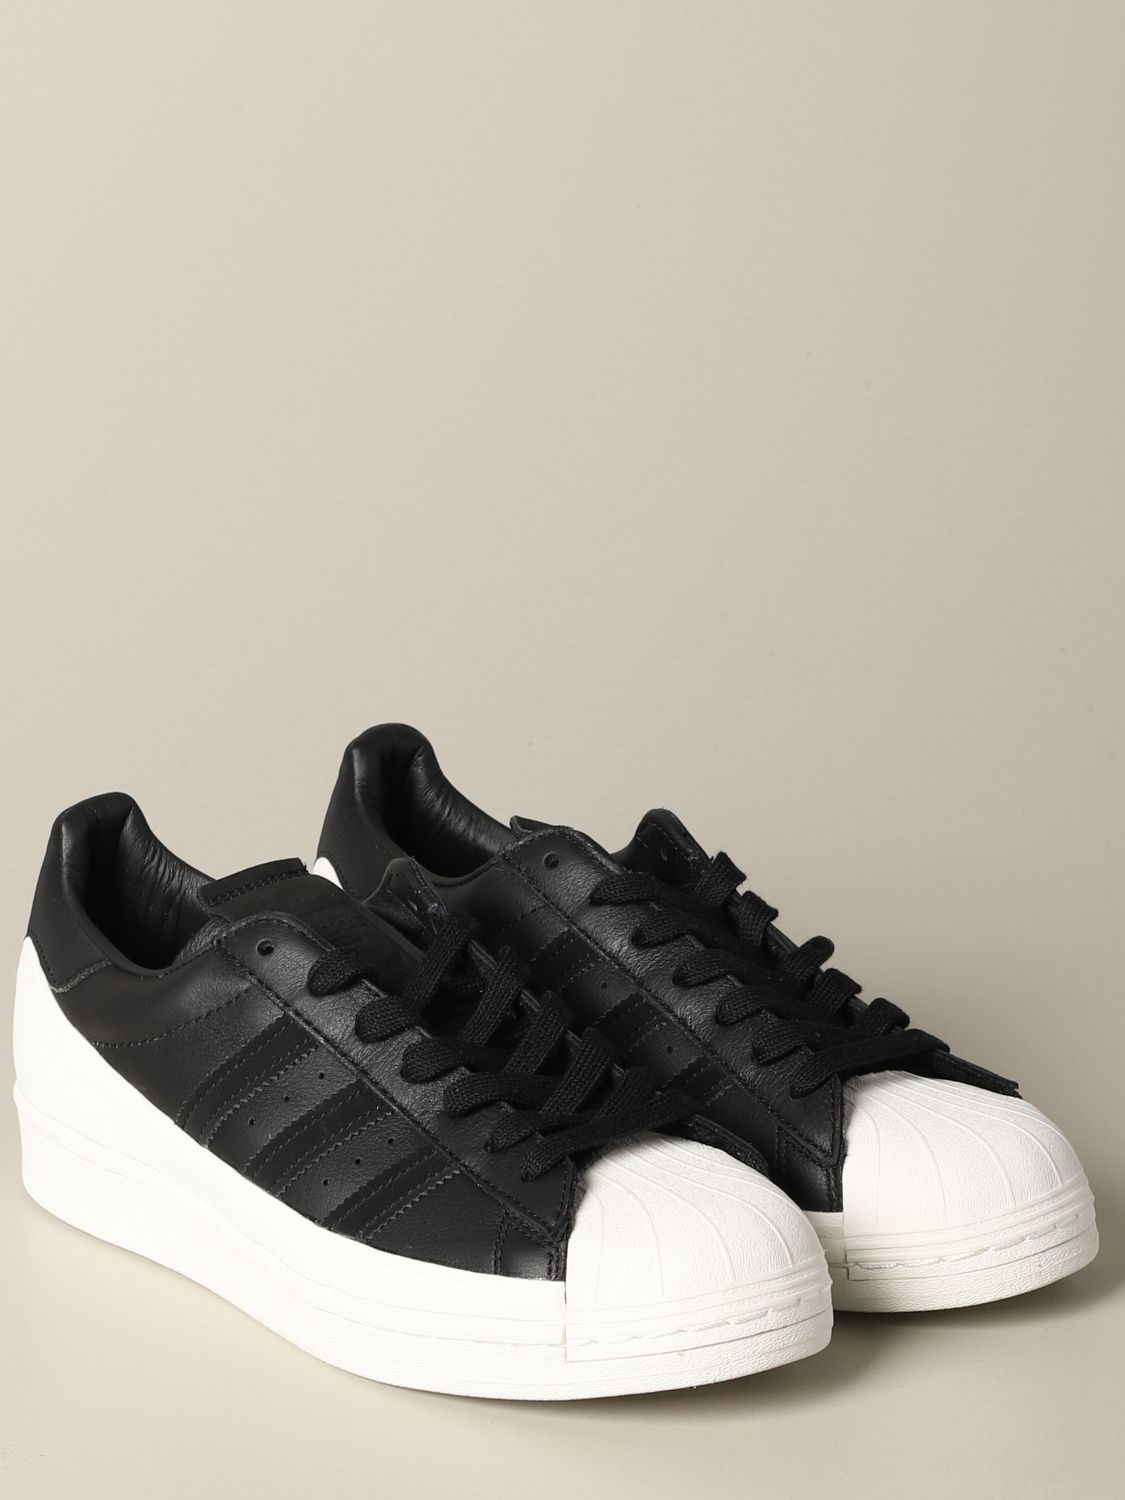 运动鞋 Adidas Originals: Adidas Originals Superstar logo 真皮运动鞋 黑色 2